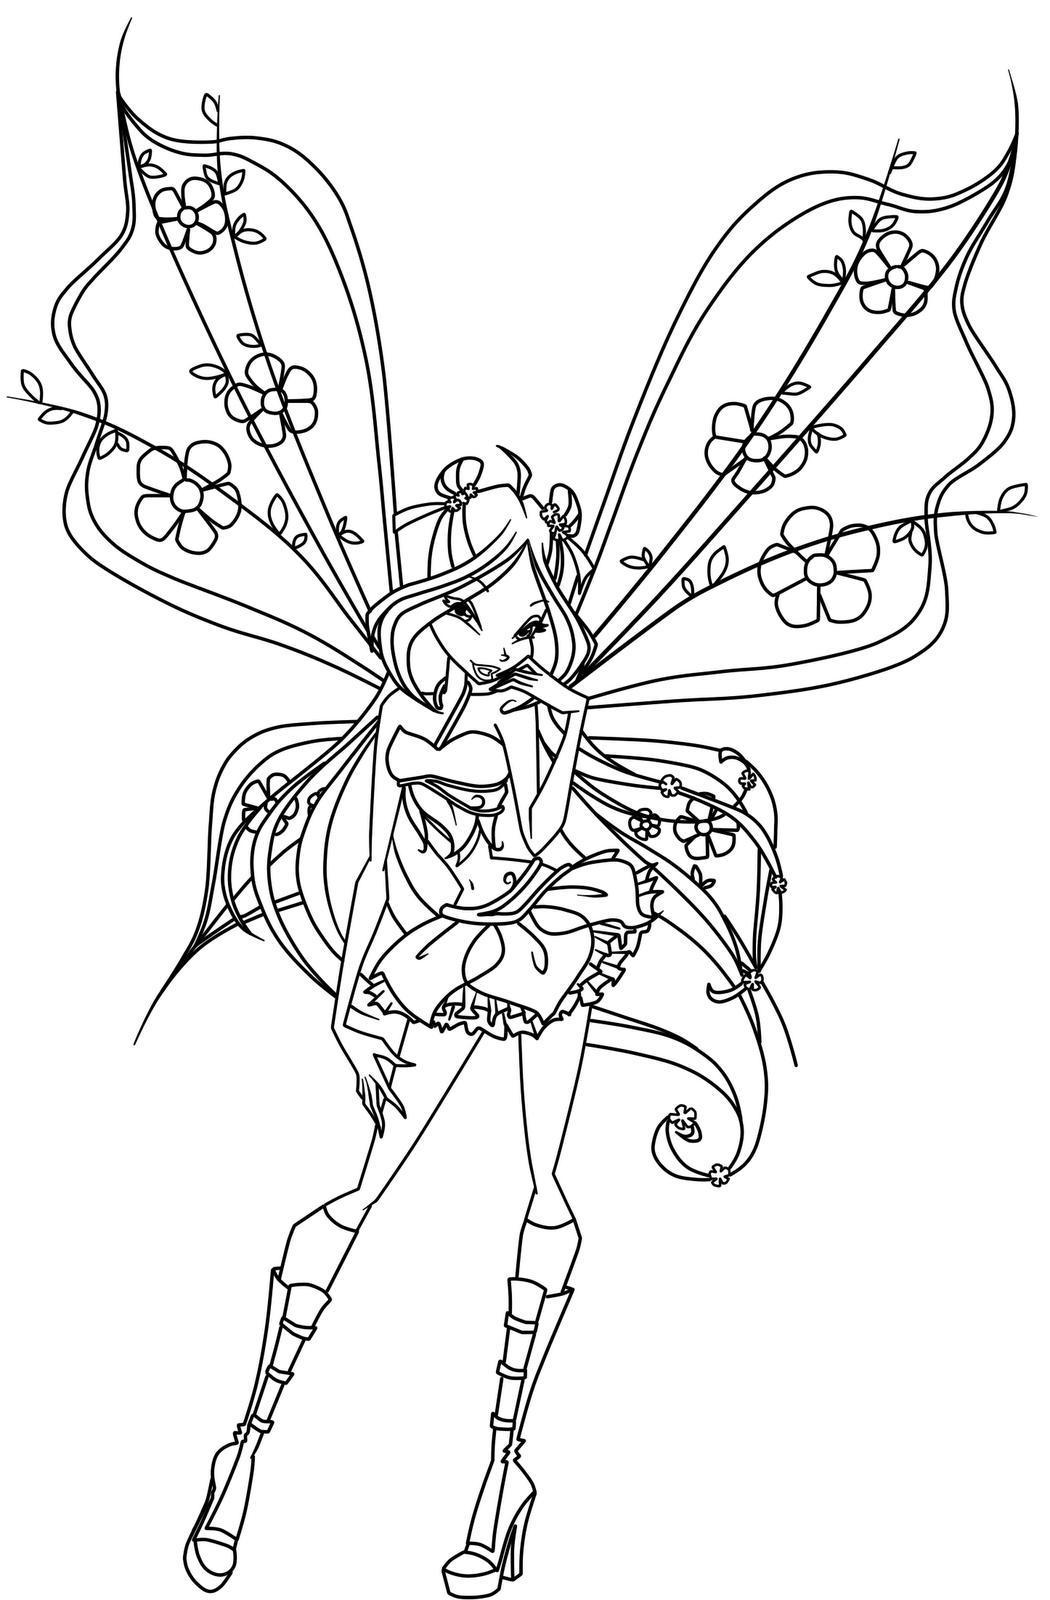 winxs club coloring pages - photo#24